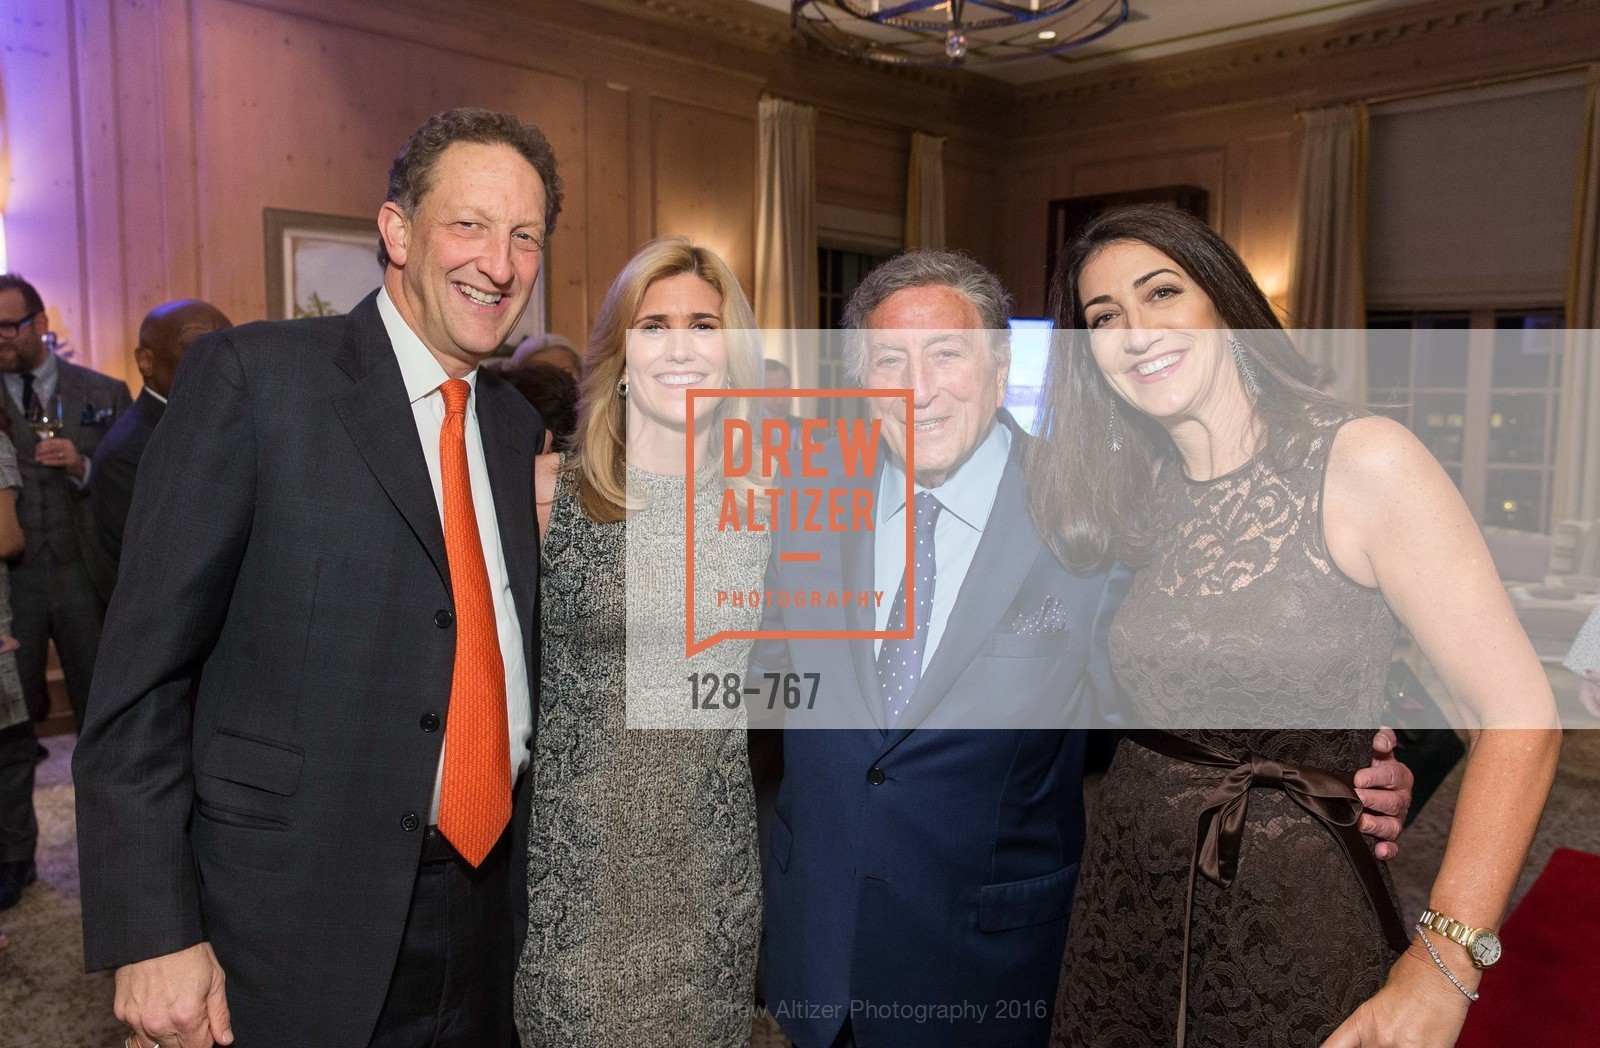 Larry Baer, Susan Benedetto, Tony Bennett, Pam Baer, A Special Reception with Tony Bennett, The Fairmont, San Francisco, The Penthouse Suite, January 26th, 2016,Drew Altizer, Drew Altizer Photography, full-service agency, private events, San Francisco photographer, photographer california